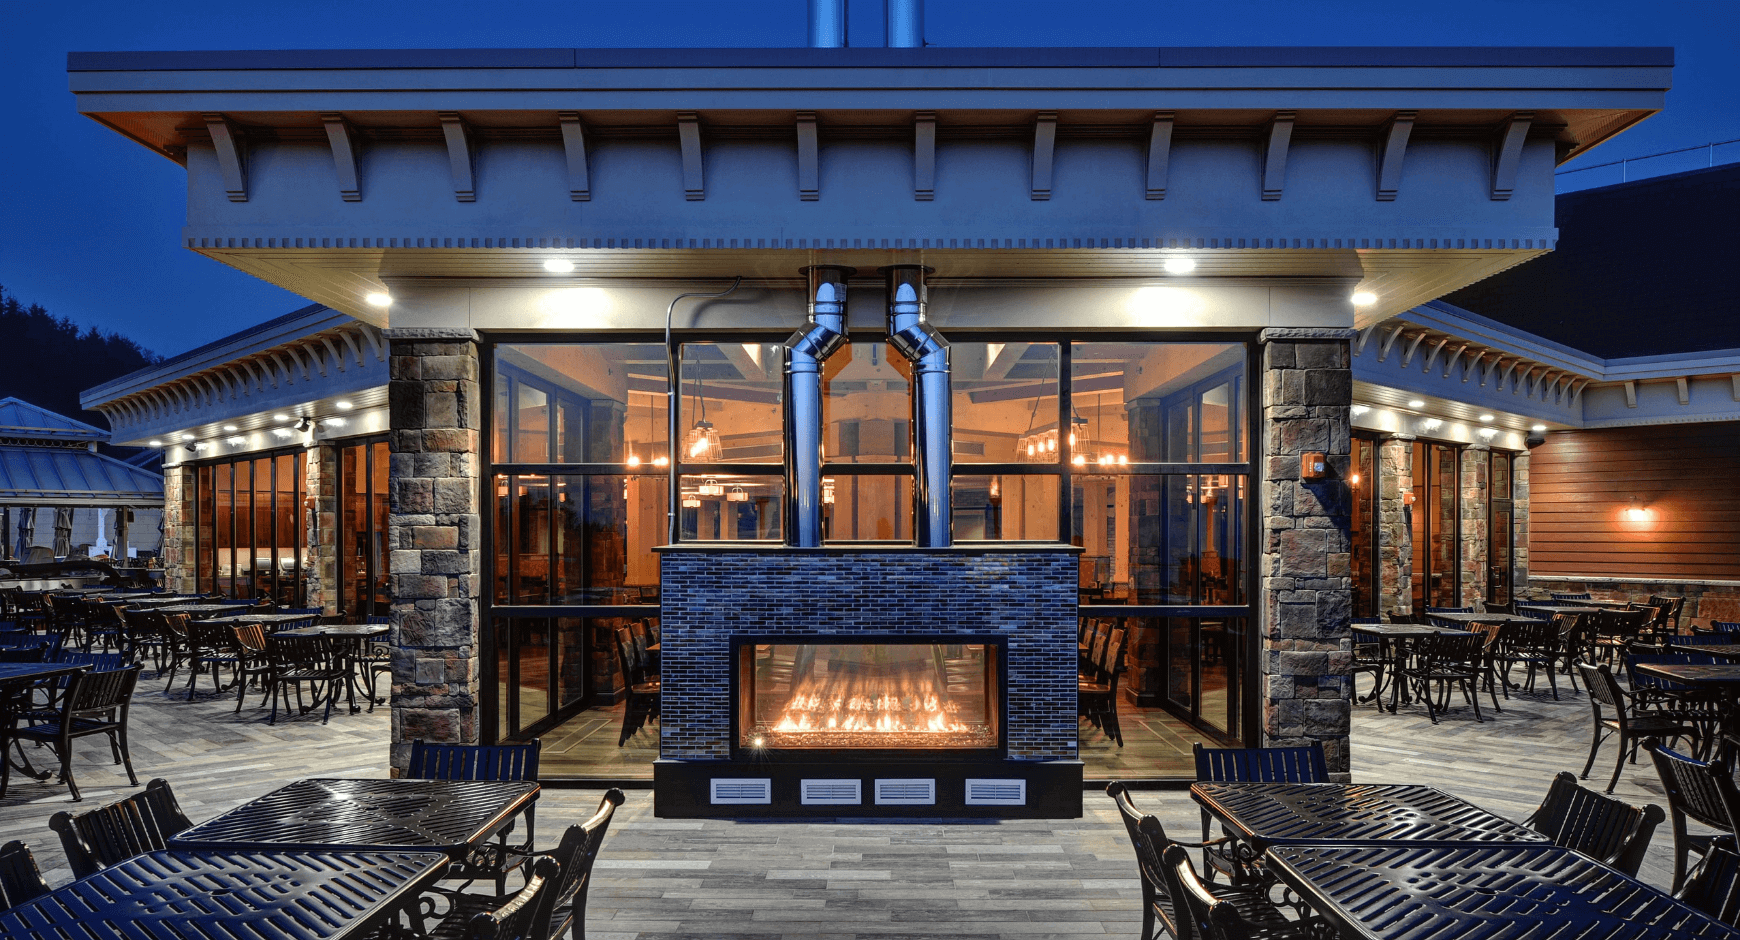 Indoor Outdoor Fireplaces Ideas for a Commercial Setting